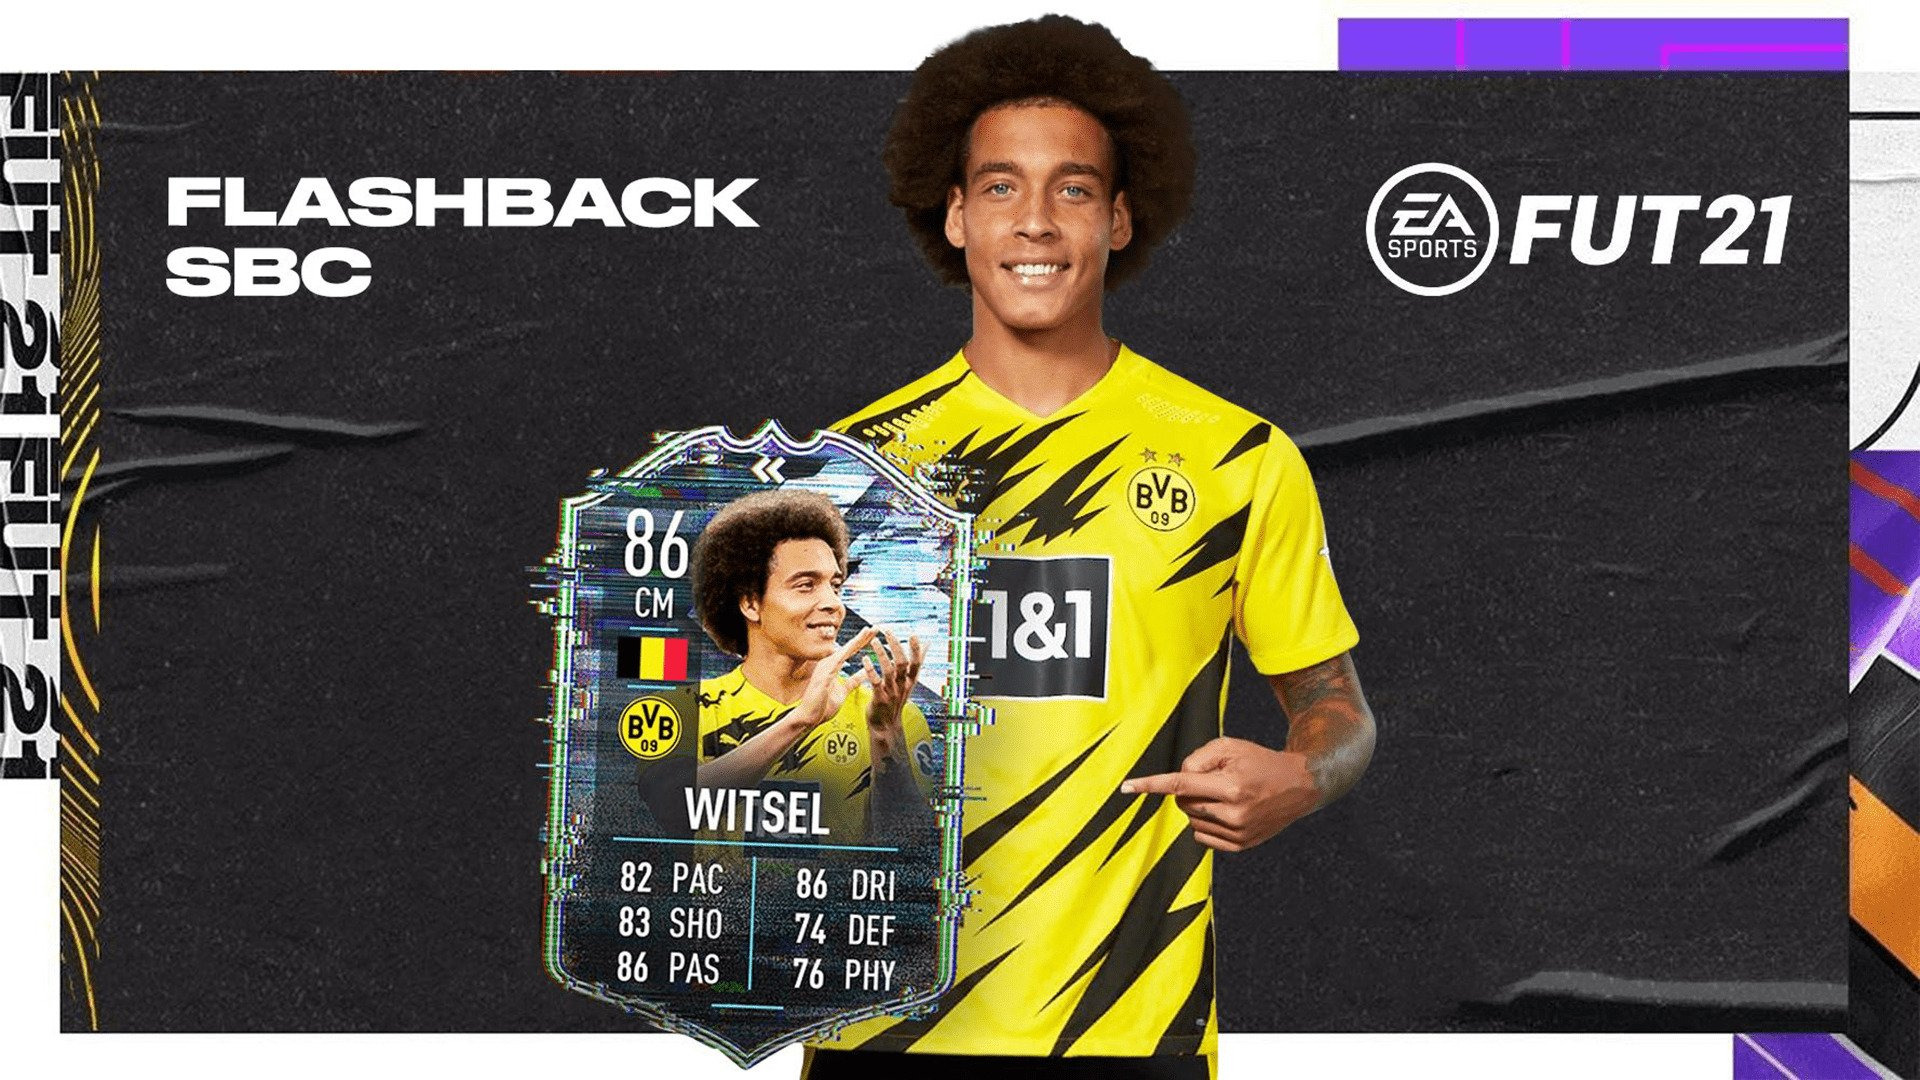 Should You Do The Axel Witsel Flashback SBC In FIFA 21? Another Flashback Witsel…